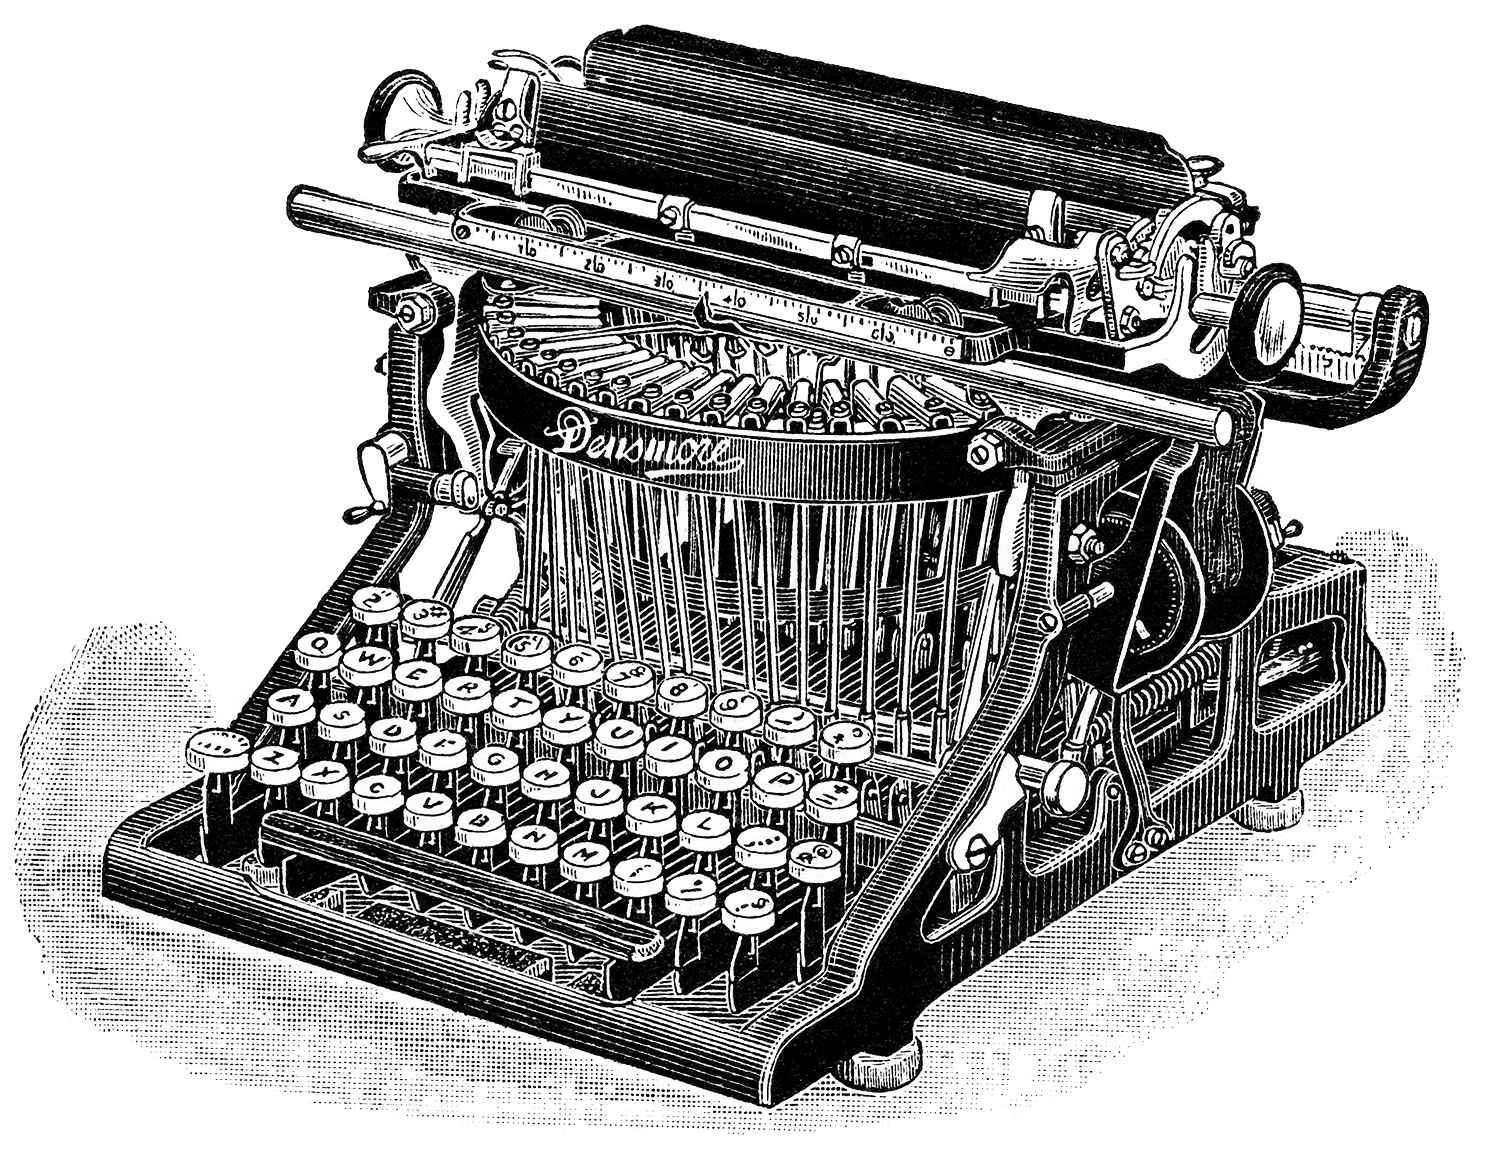 Antique typewriter clipart 20 free Cliparts | Download ...